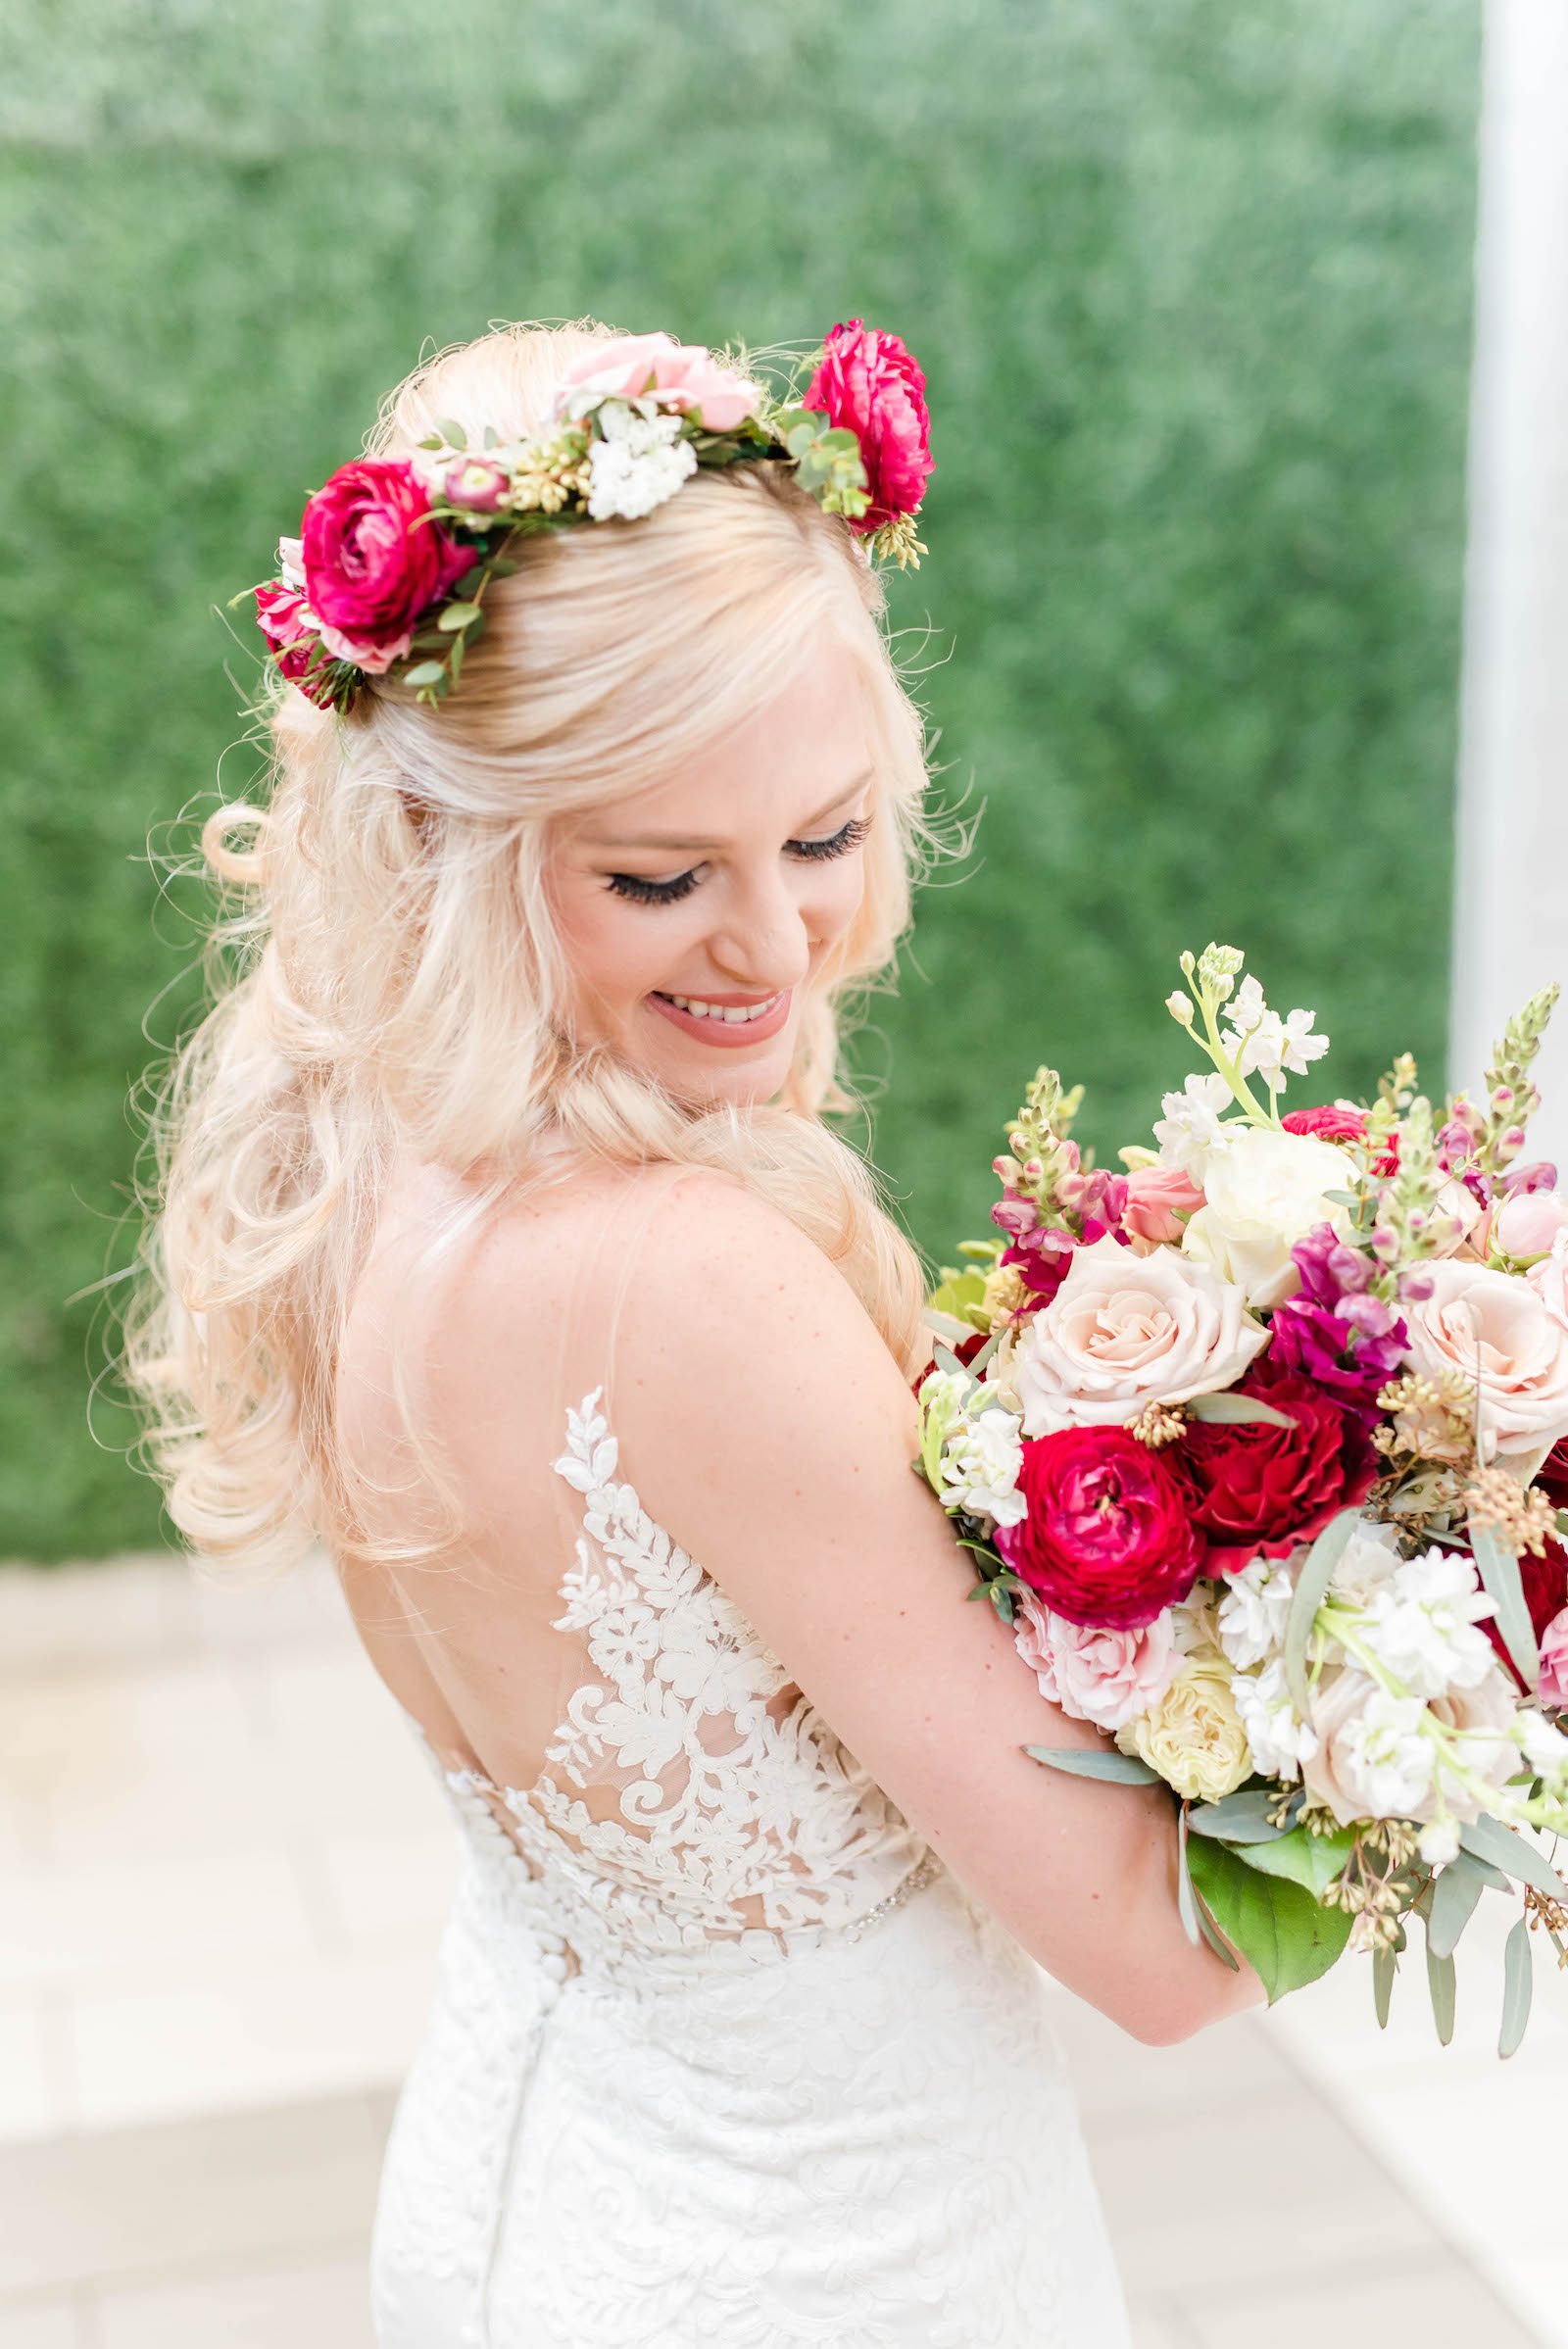 Bridal Portrait Bouquet Shot   Stella York Lace Sheath Spaghetti Strap Empire Waist Wedding Dress Bridal Gown   Bride Wedding Bouquet and Halo Crown with Blush Pink Dusty and Burgundy Rose Garden Roses, Snapdragons, Stock, and Eucalyptus Greenery